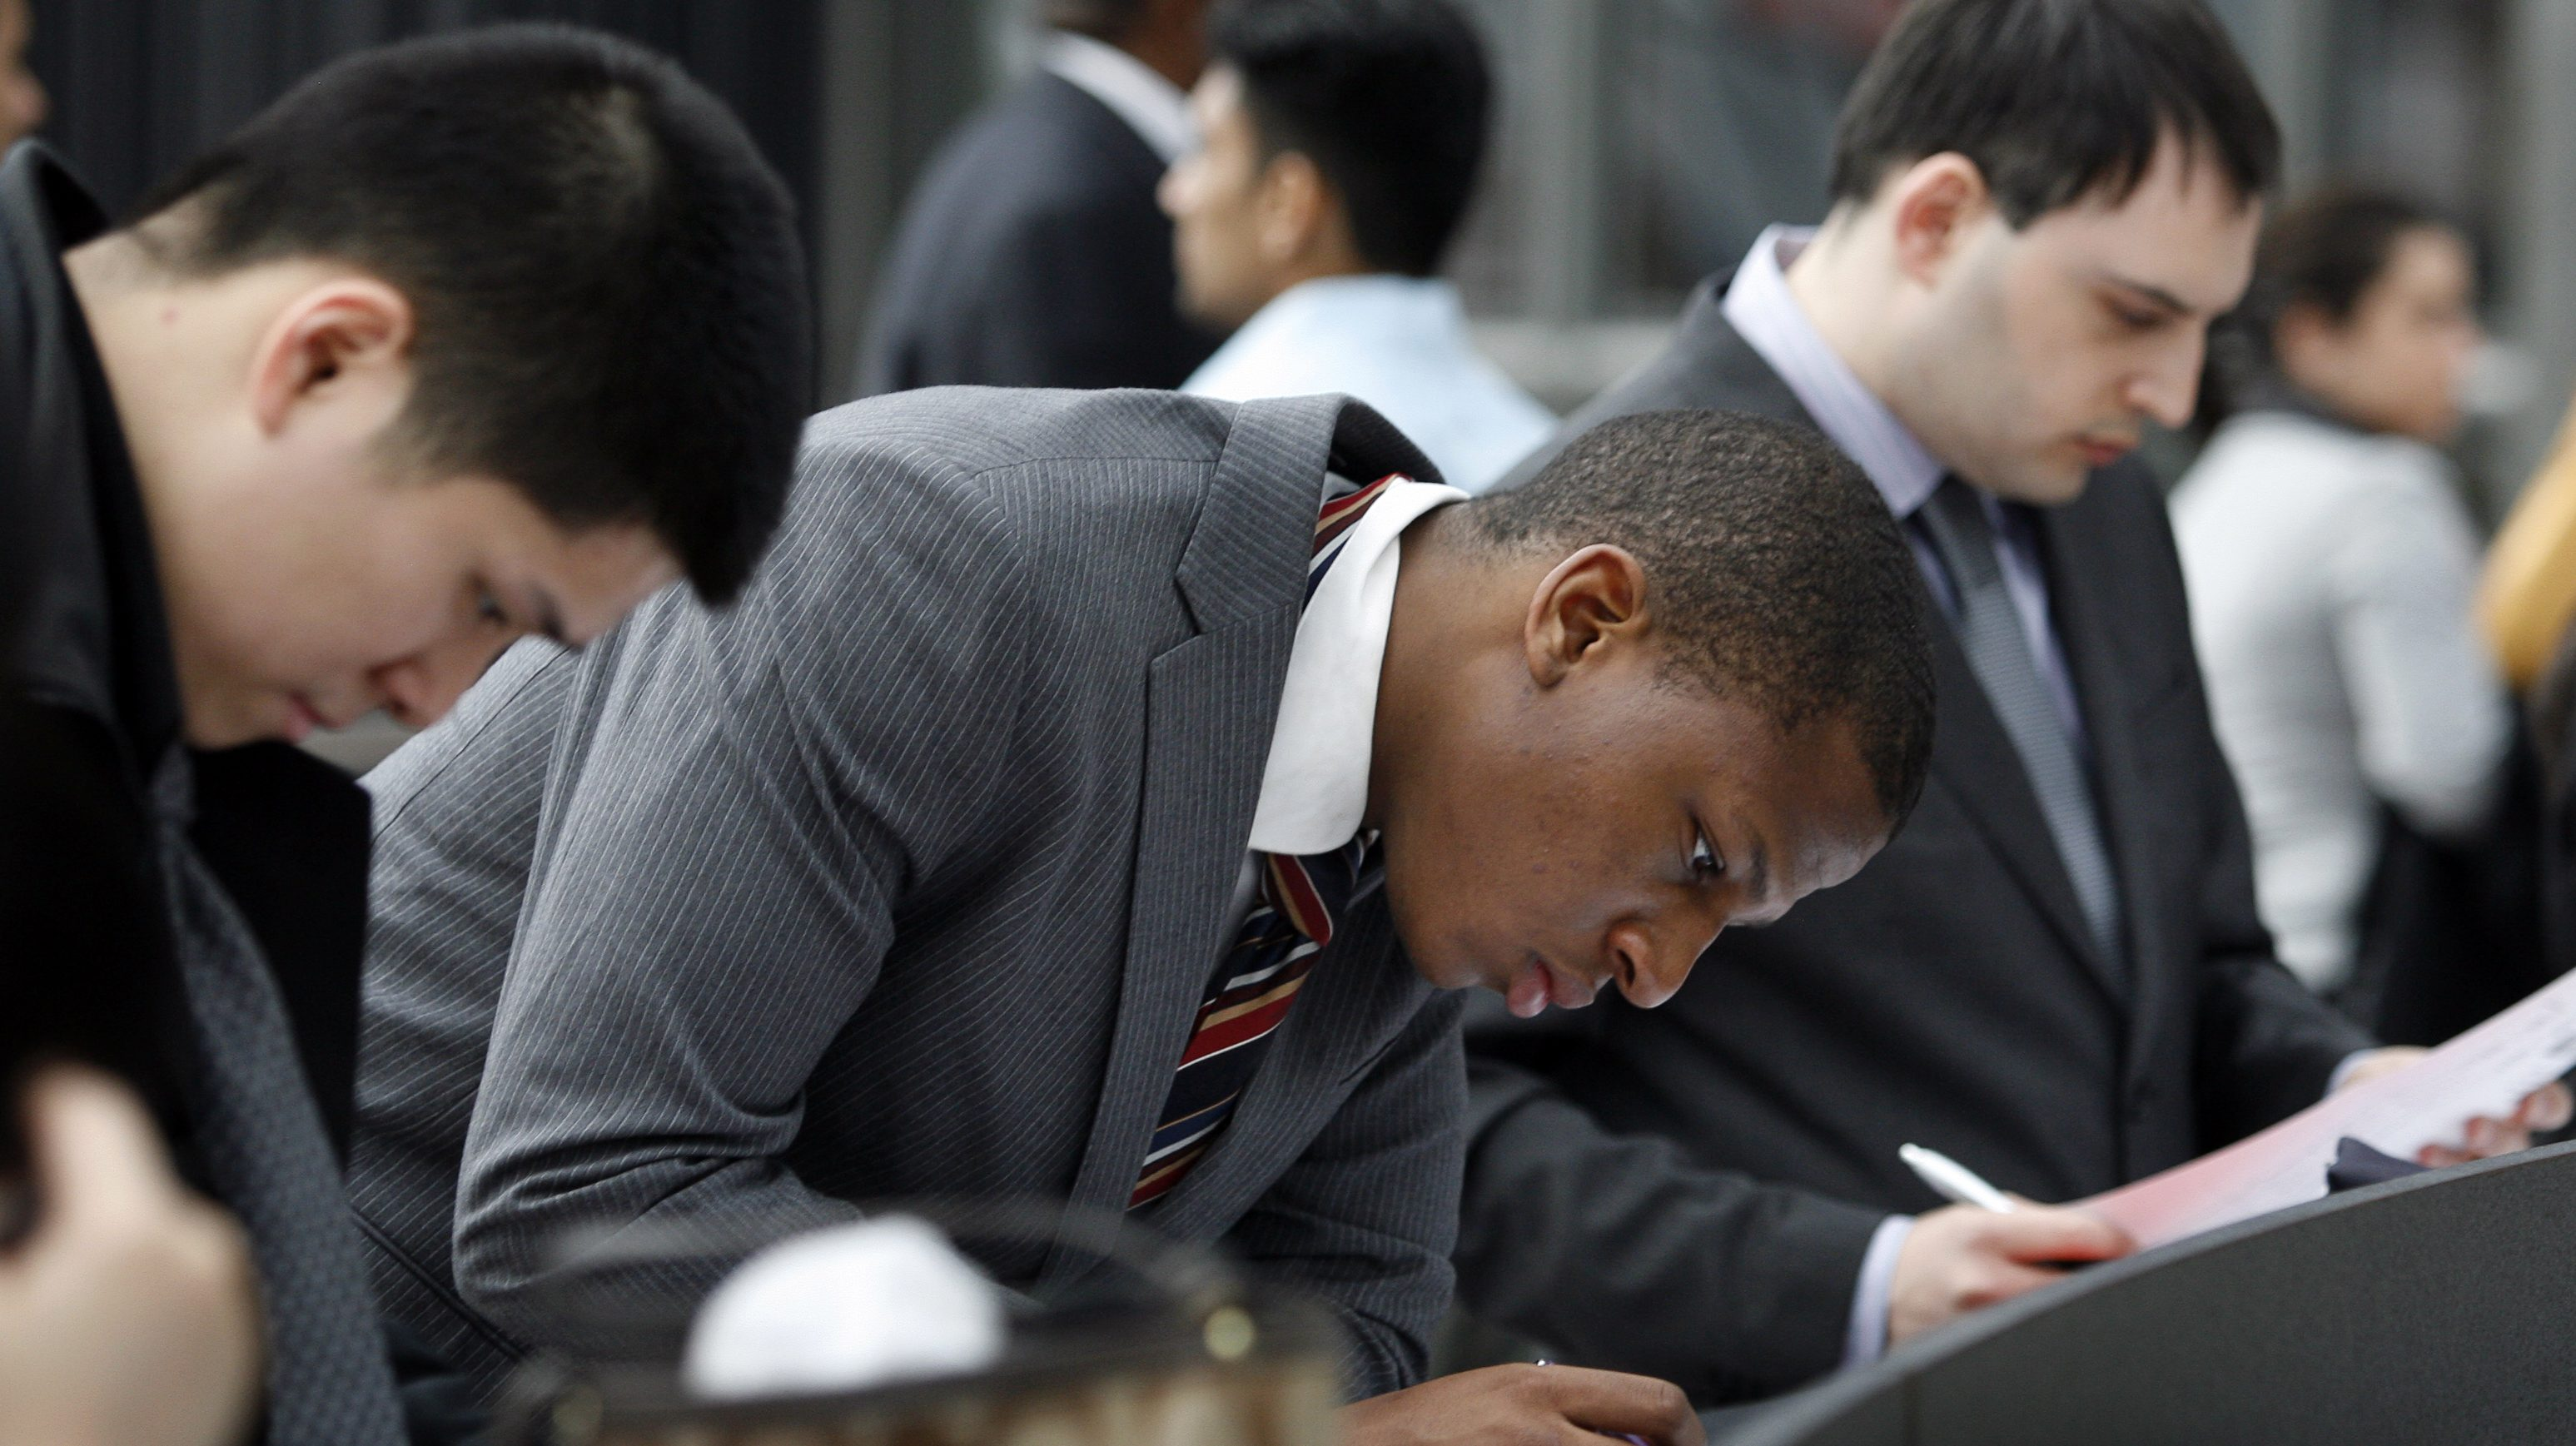 A man looks at a list of employers at the 2009 CUNY Big Apple Job Fair at the Jacob K. Javits Convention Center in New York March 20, 2009.